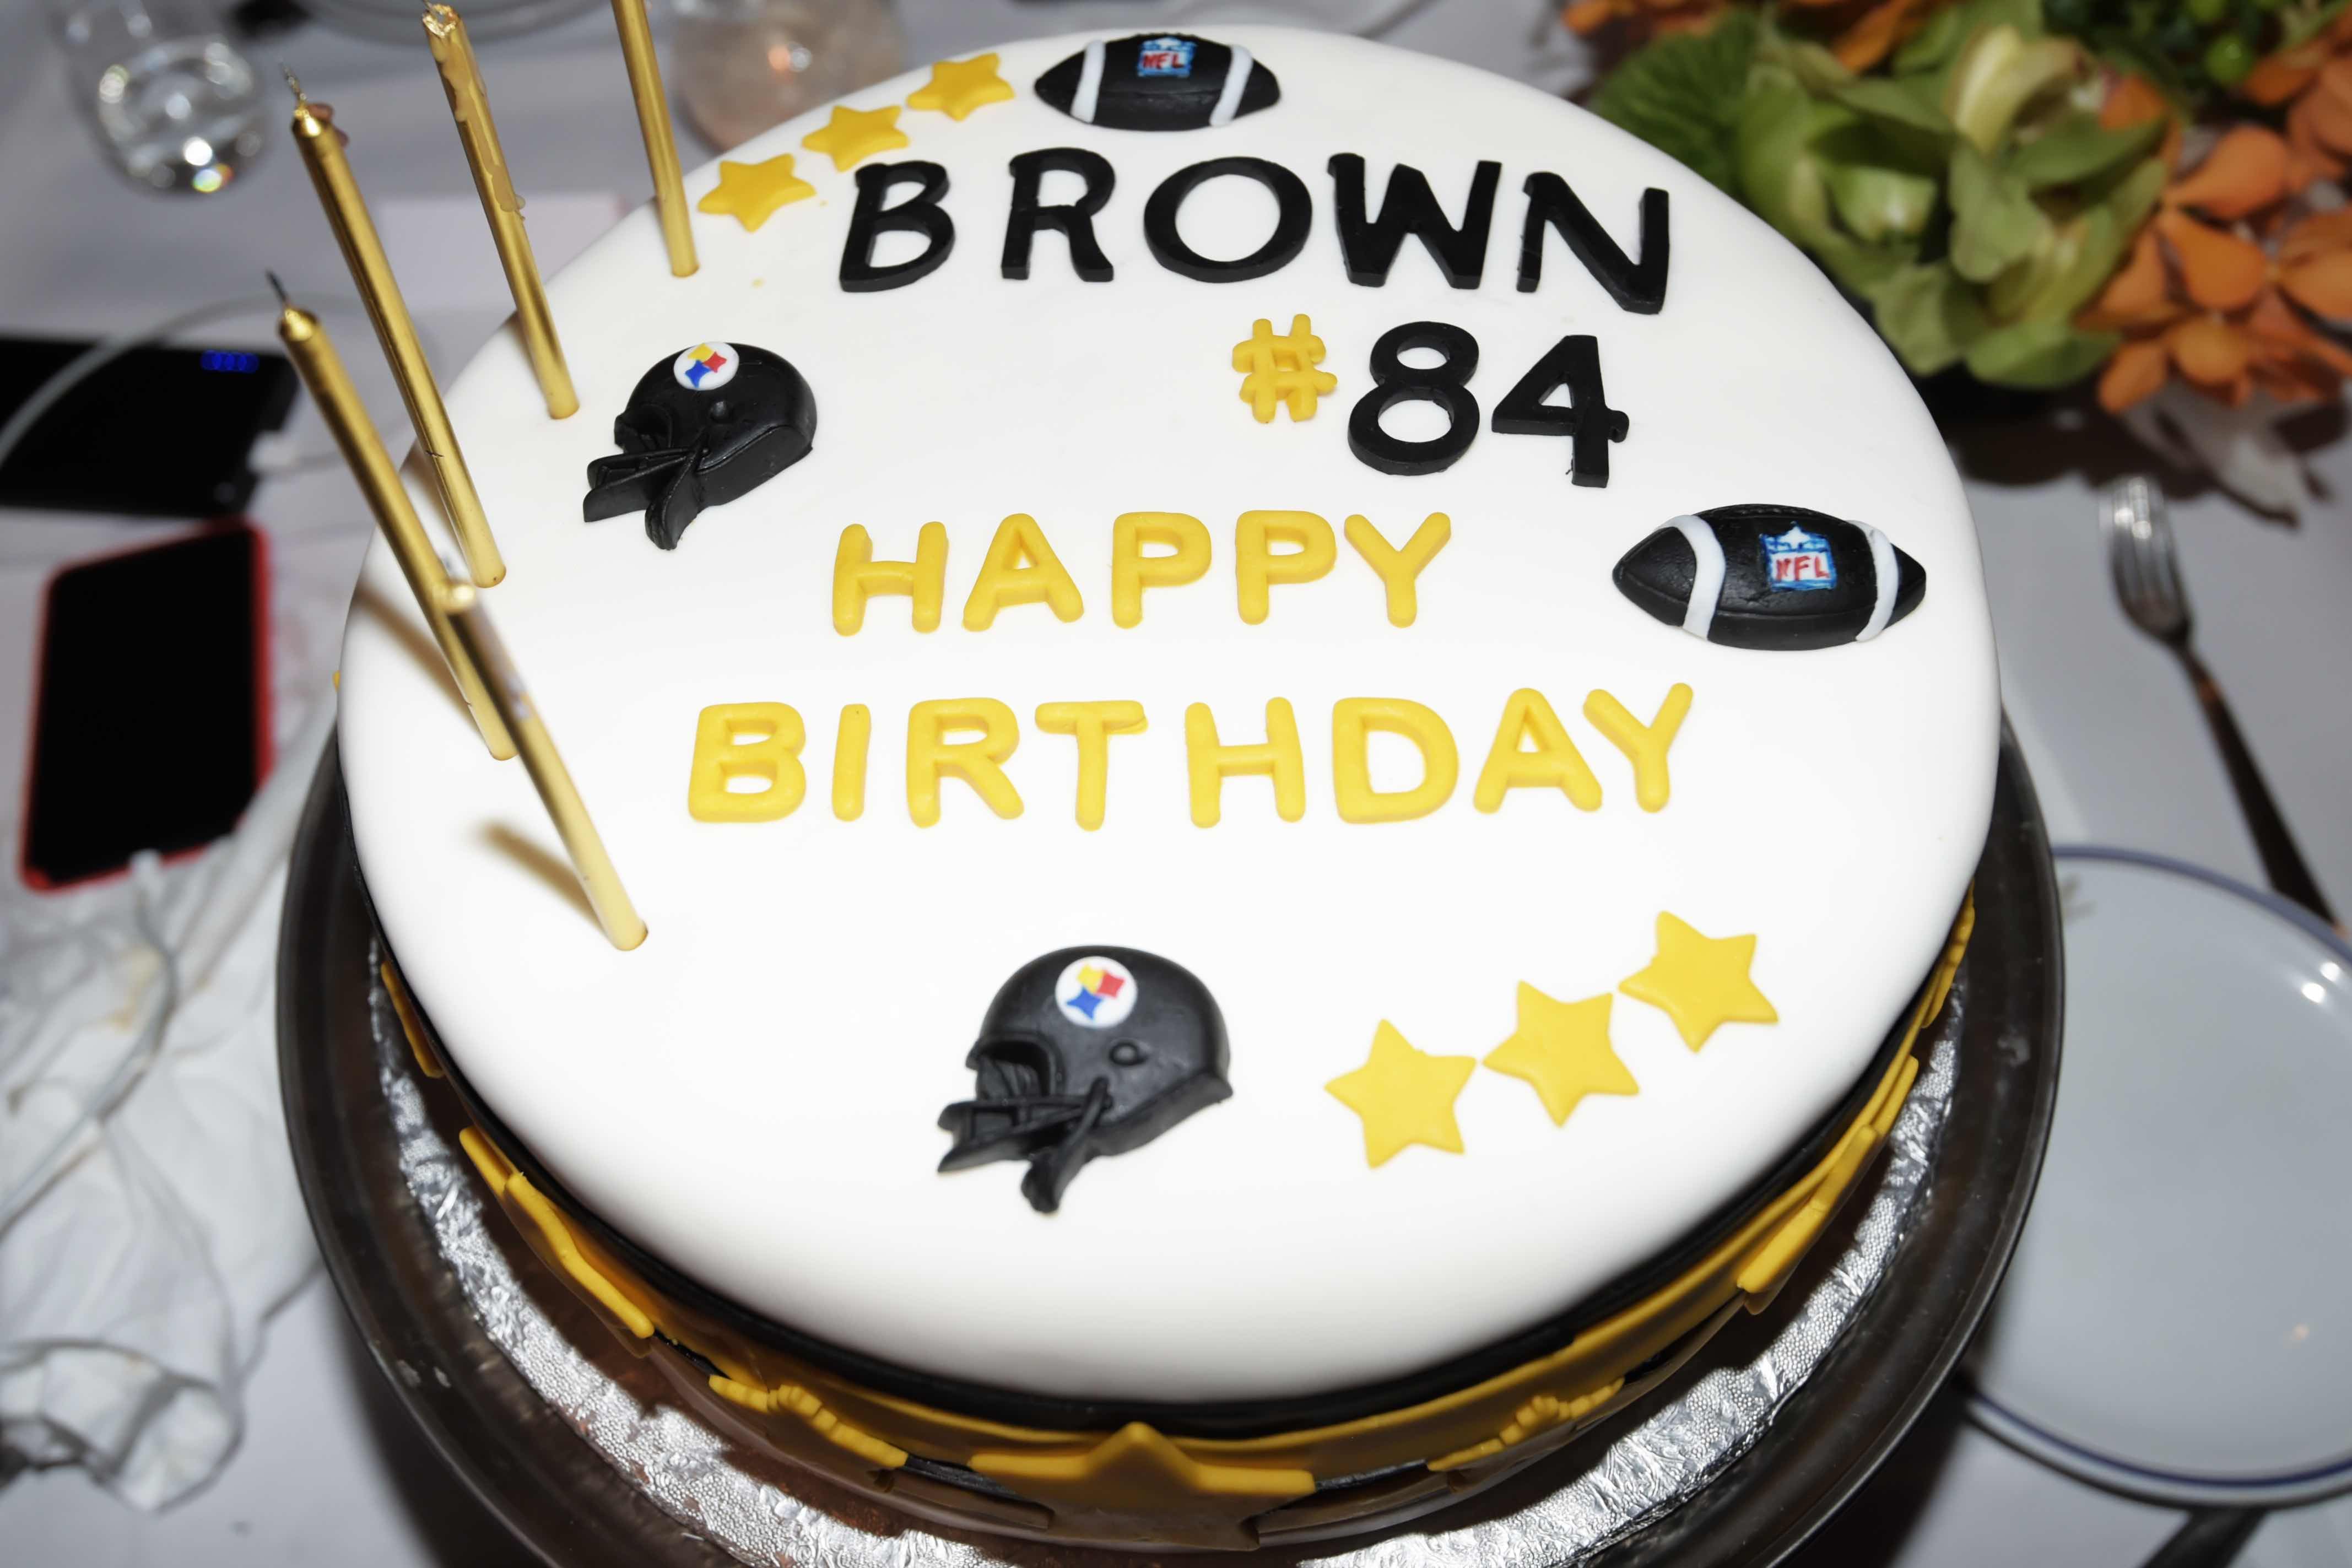 Antonio Brown's Birthday Cake